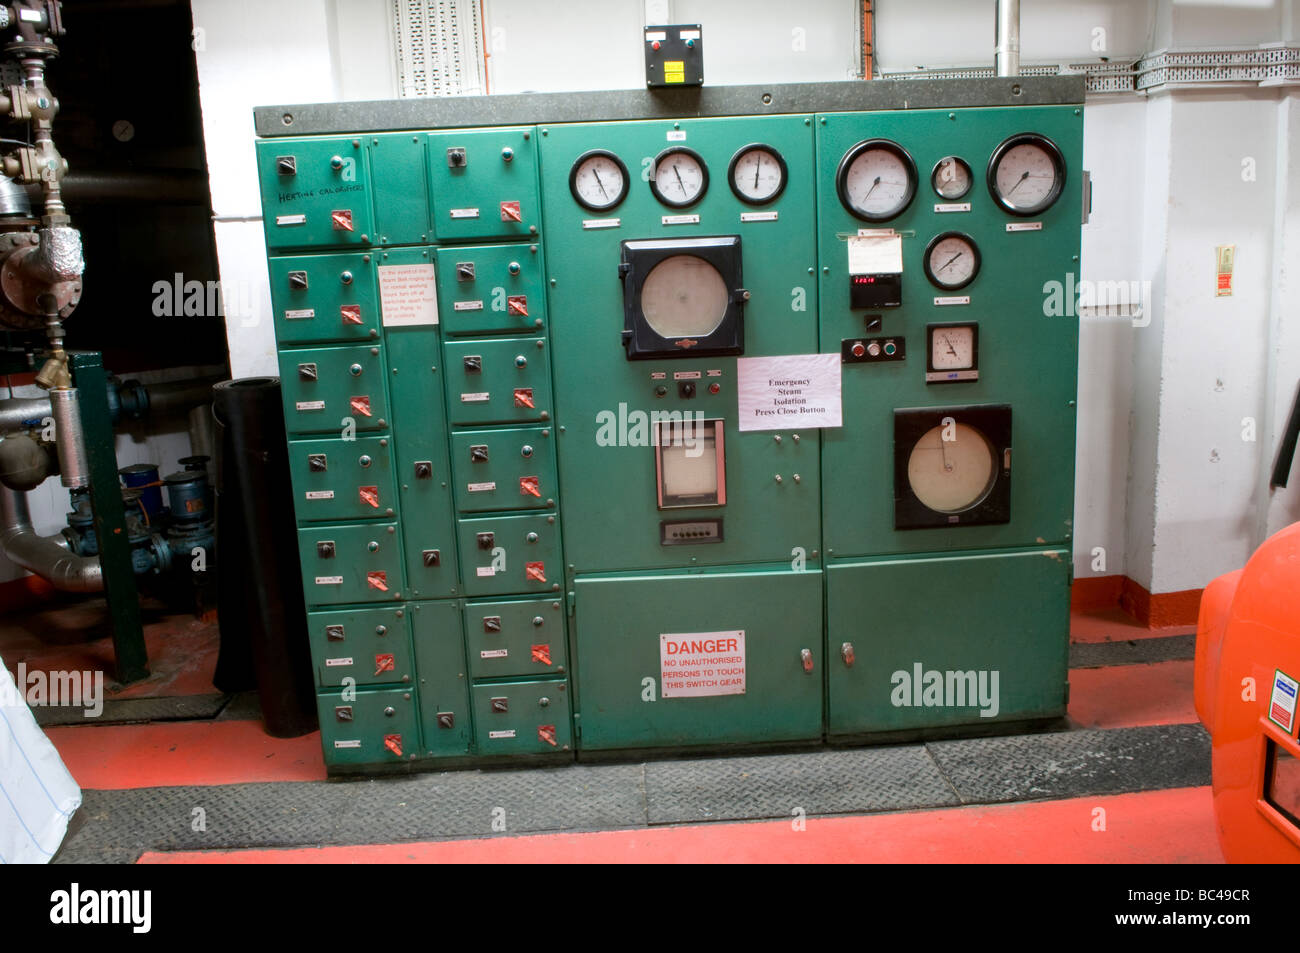 Large office building boiler room control panel for steam heating ...